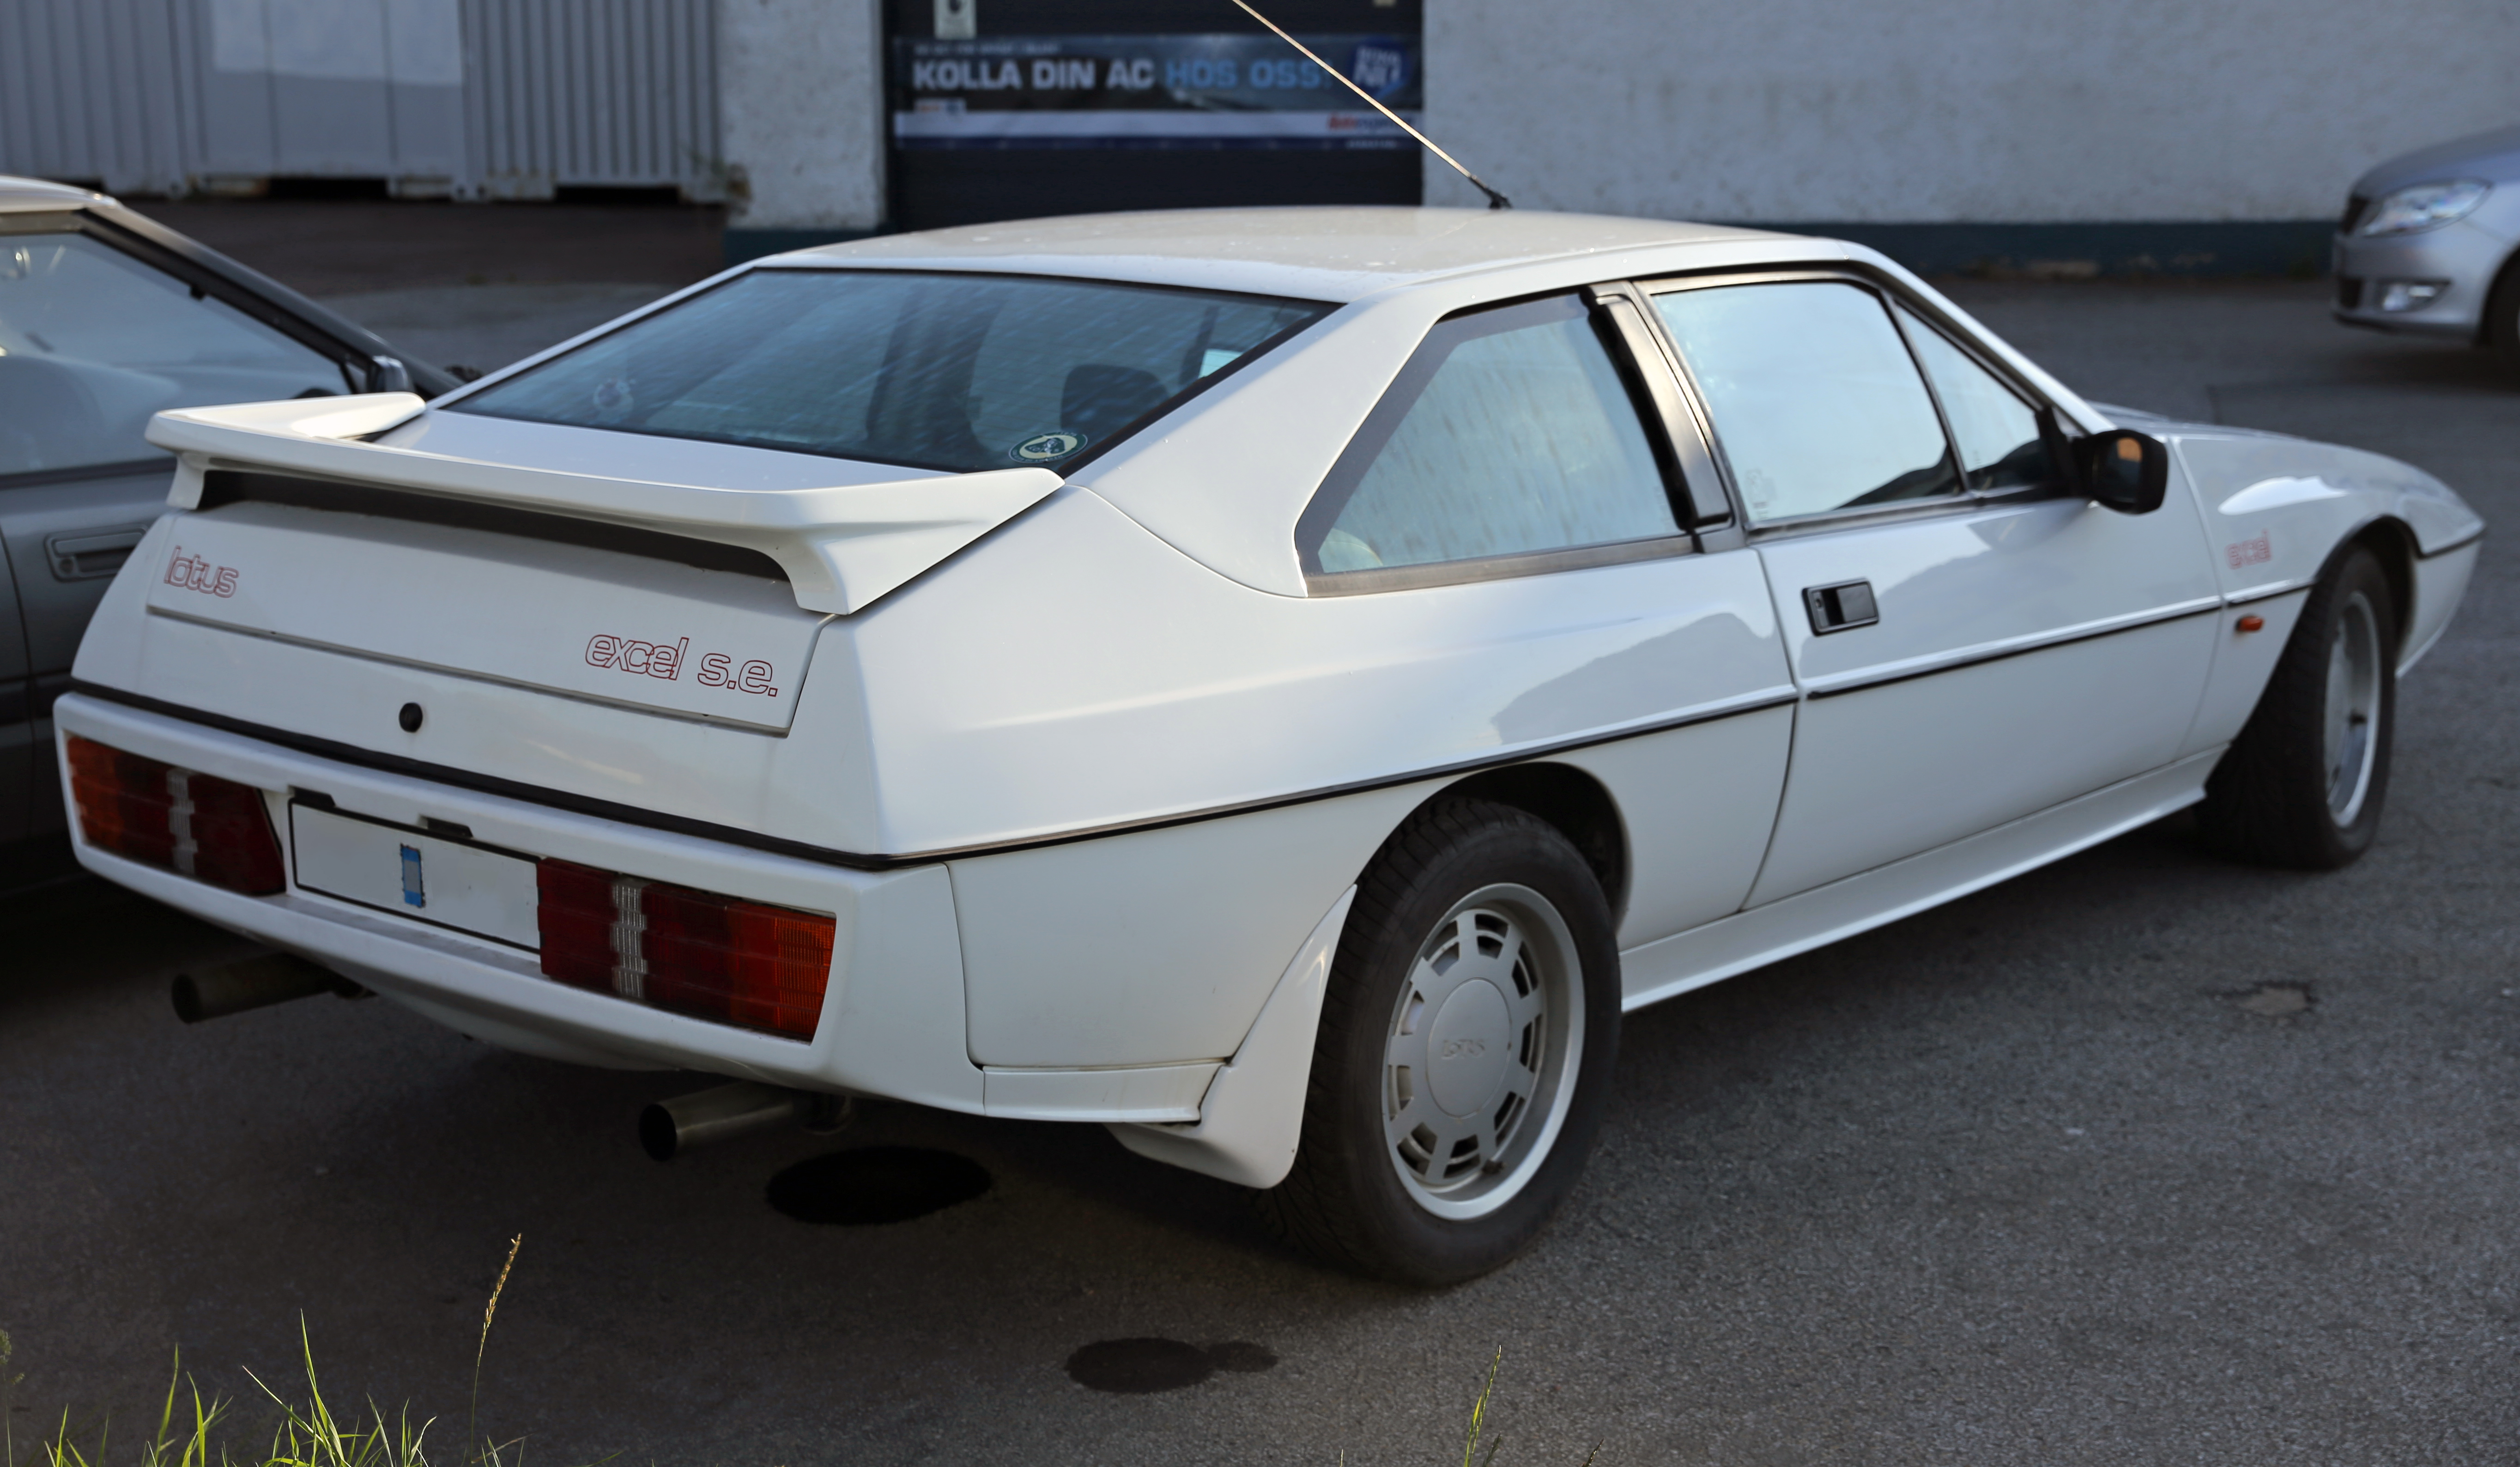 Supra For Sale >> File:1986 Lotus Excel S.E. rear.jpg - Wikimedia Commons